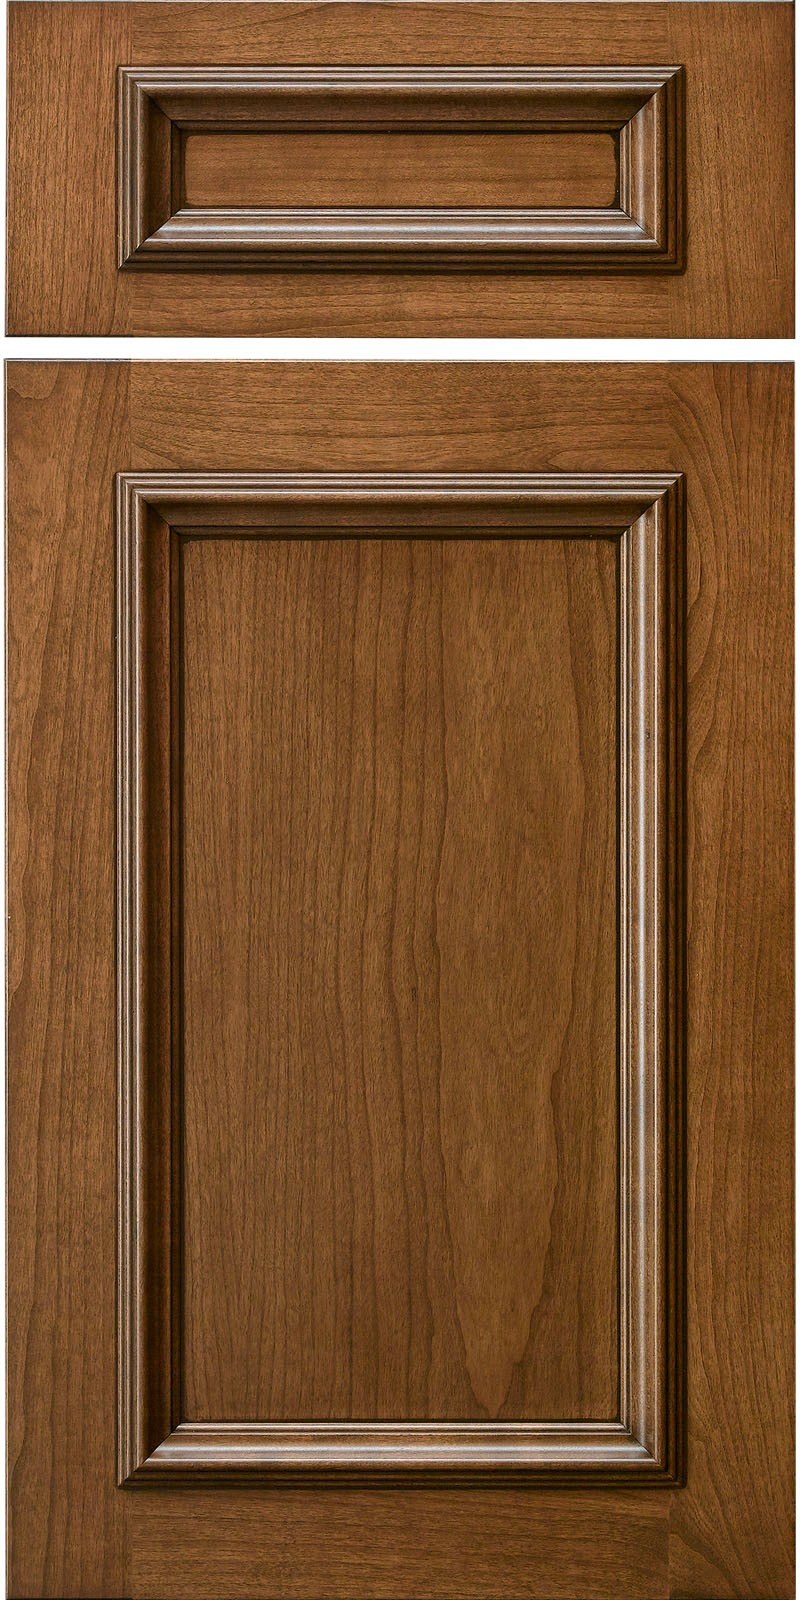 Tw101547 Plywood Panel Materials Cabinet Doors